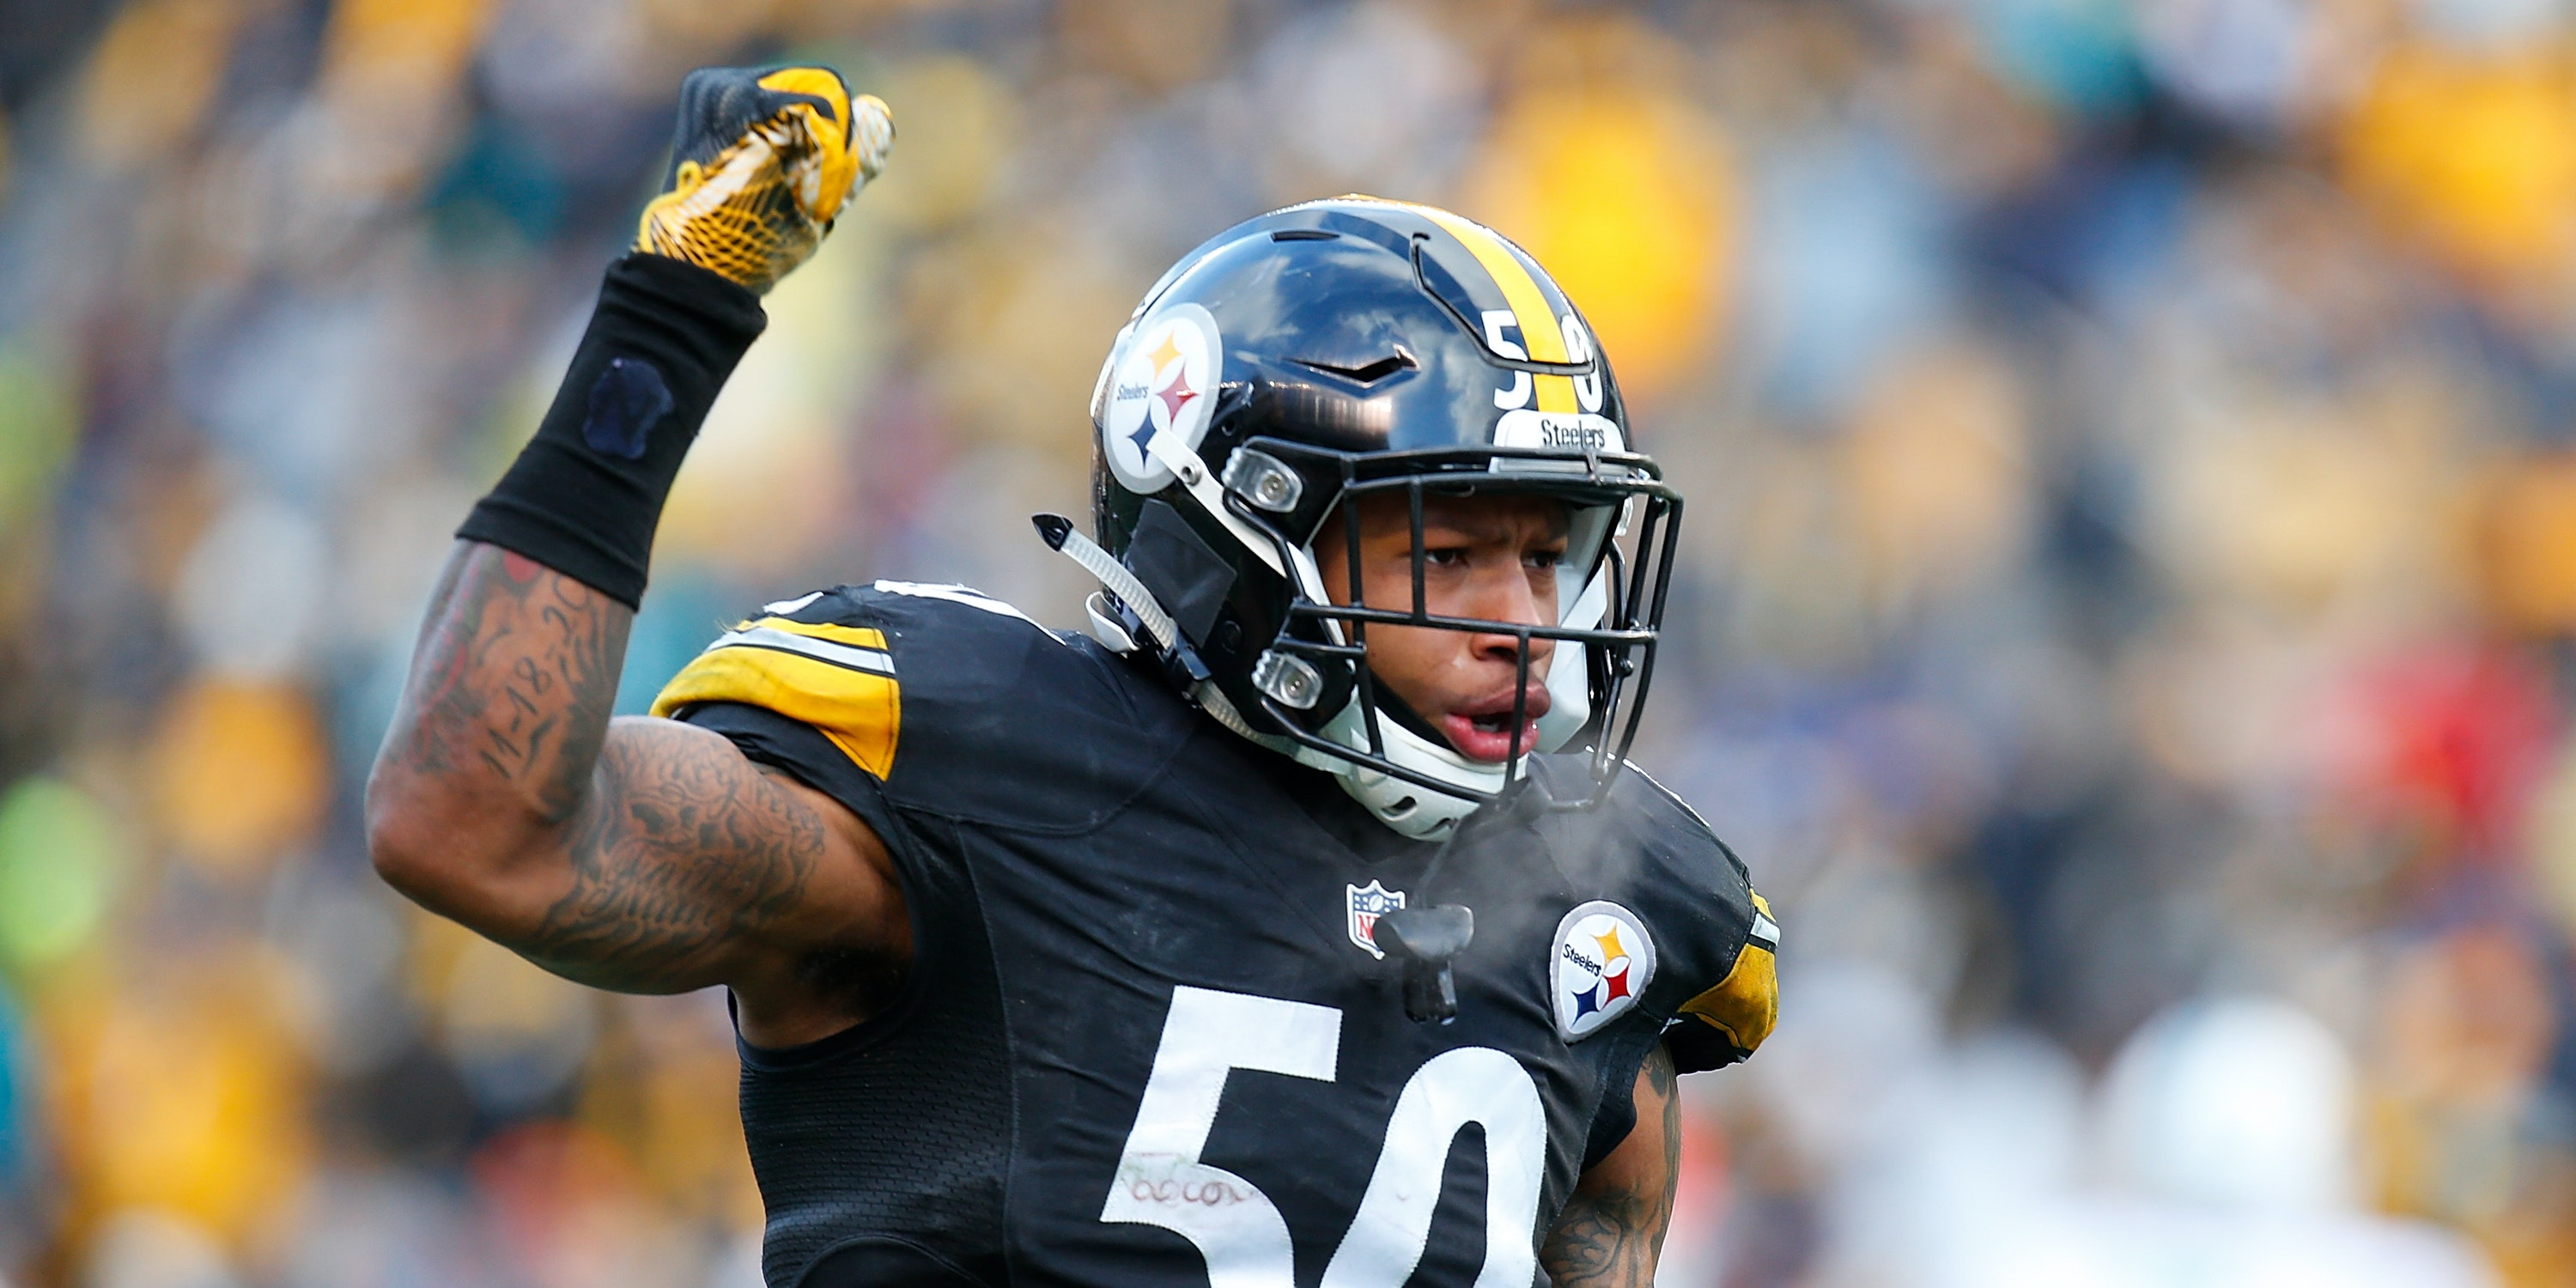 Ryan Shazier Spinal Contusion >> Spinal Contusion, Psychological Recovery, and Ryan Shazier's Future | Inverse